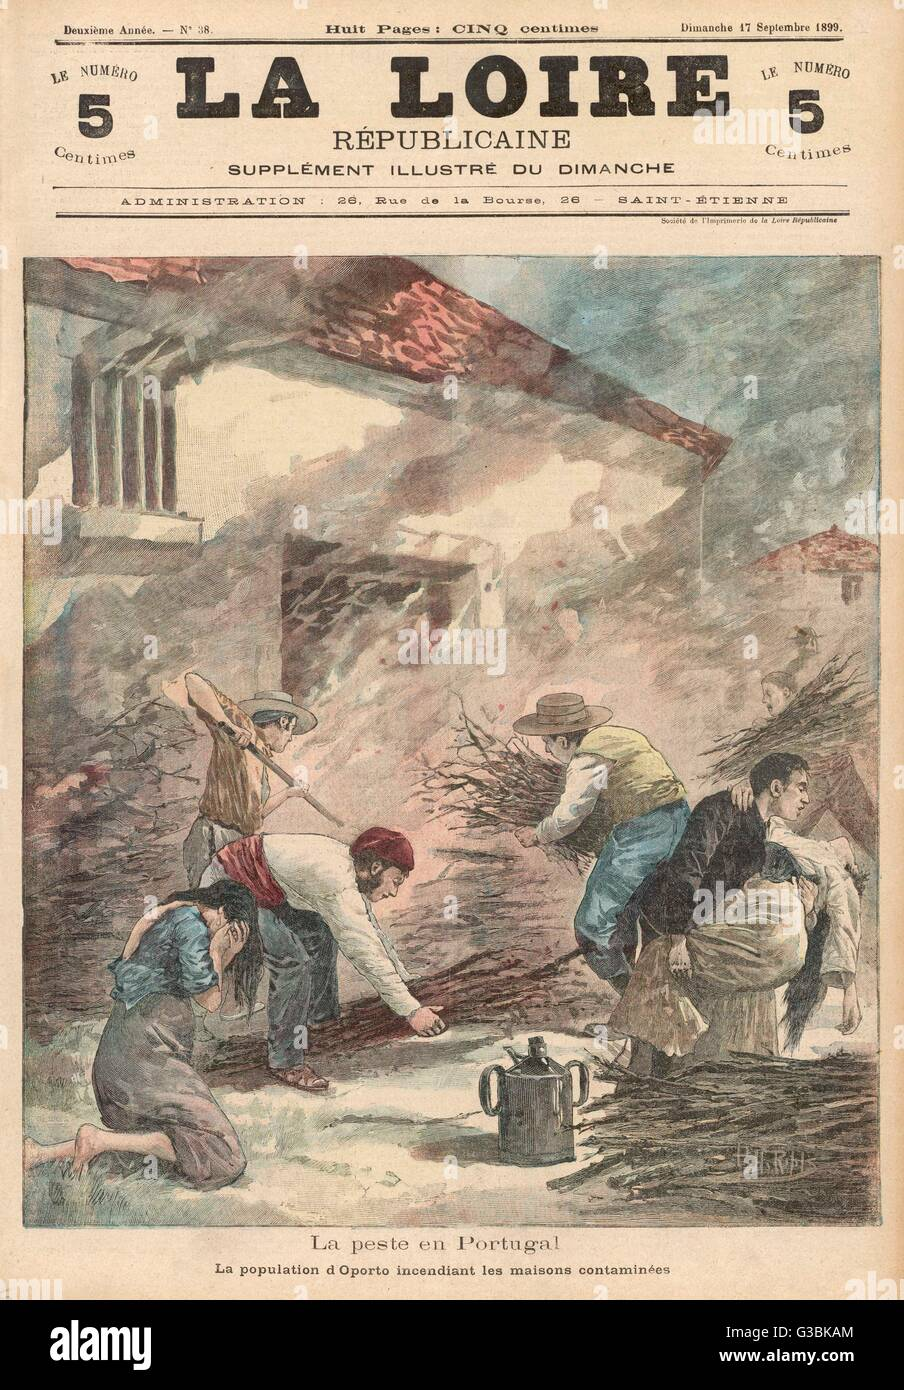 When Portugal is struck by an  epidemic of bubonic plague,  the population burn infected  homes in hope of destroying Stock Photo